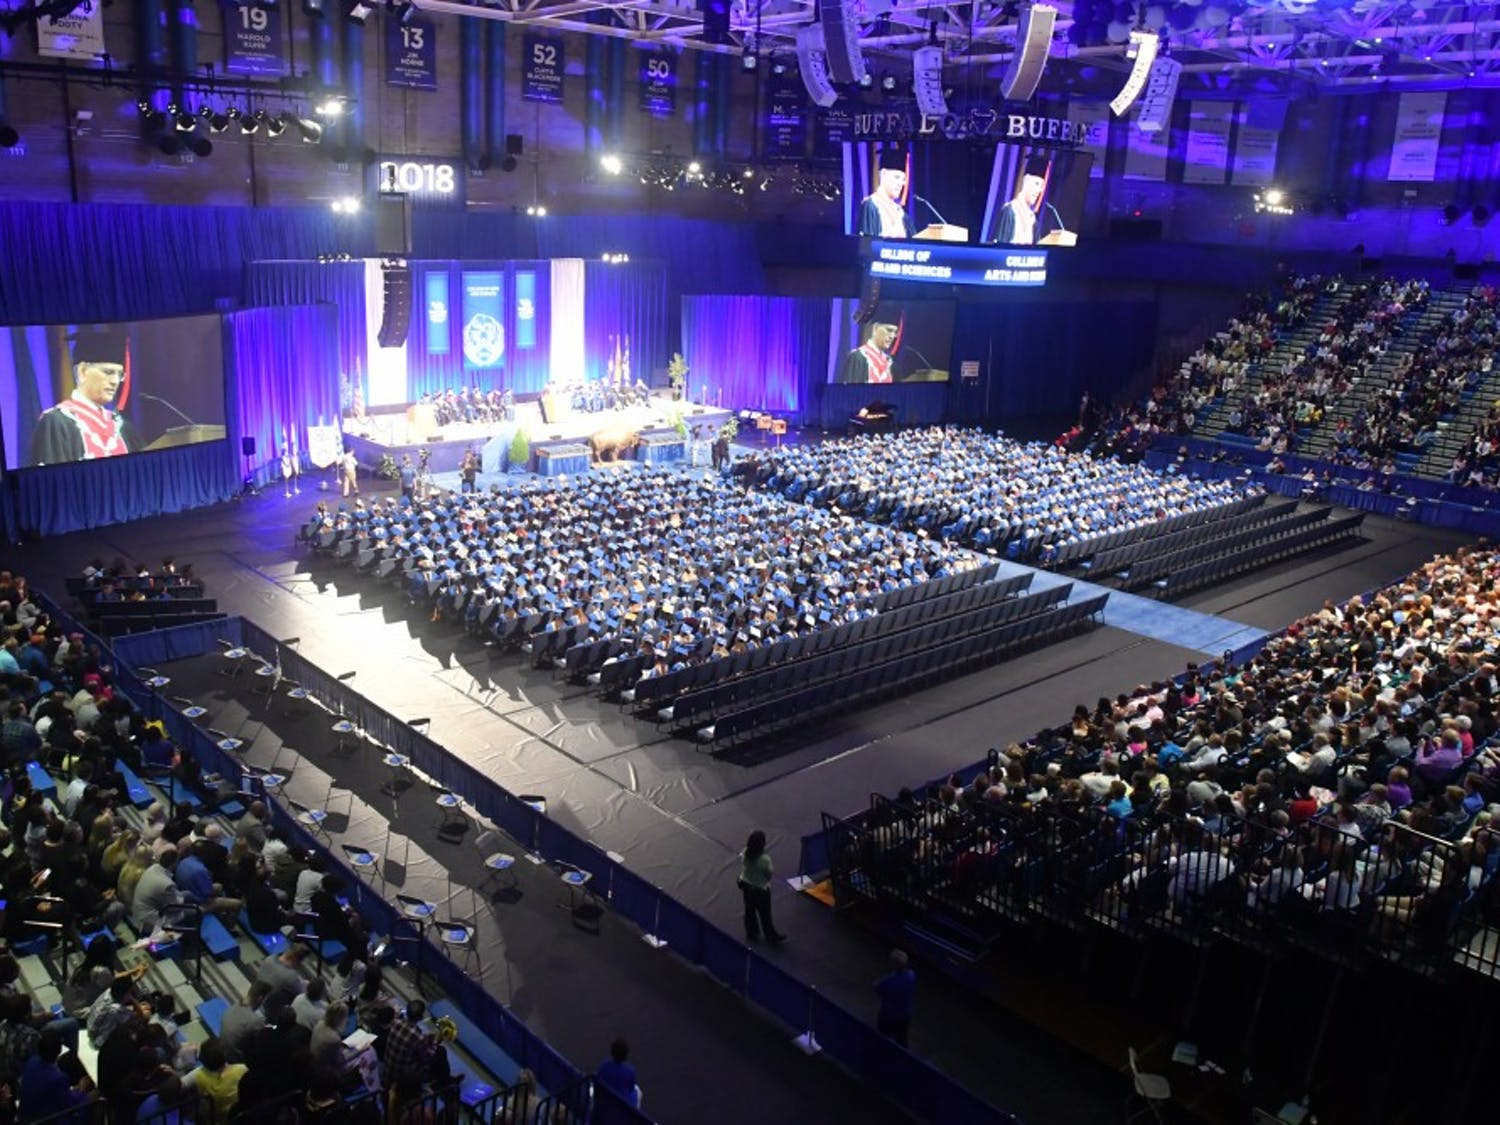 Alumni Arena during one of UB's commencement ceremonies. Hours of labor go into each ceremony so they can happen right after each other.